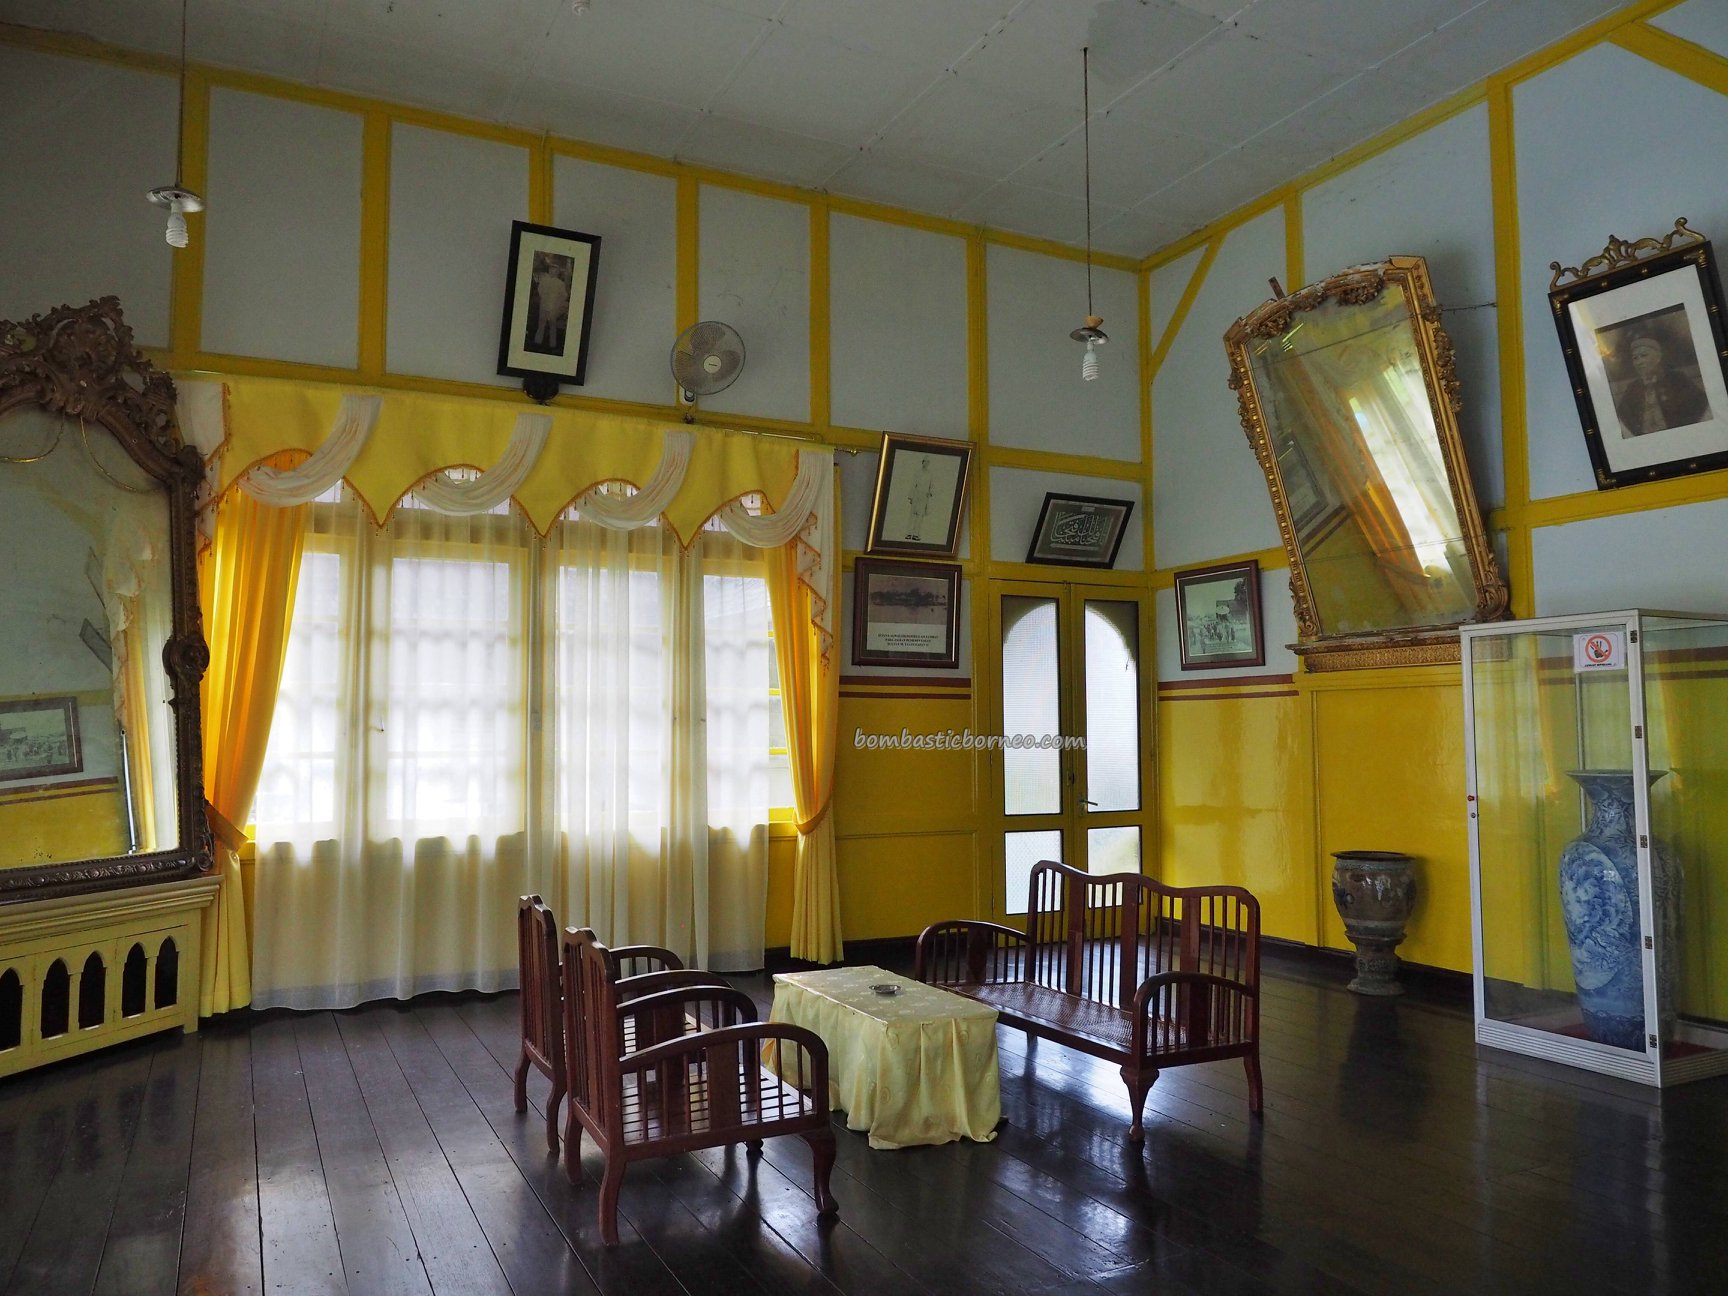 palace, Malay Sultanate, history, ancient, authentic, Dayak Melayik, town, Borneo, Indonesia, Obyek wisata, Tourism, travel guide, crossborder, 印尼西加里曼丹, 三发皇宮,